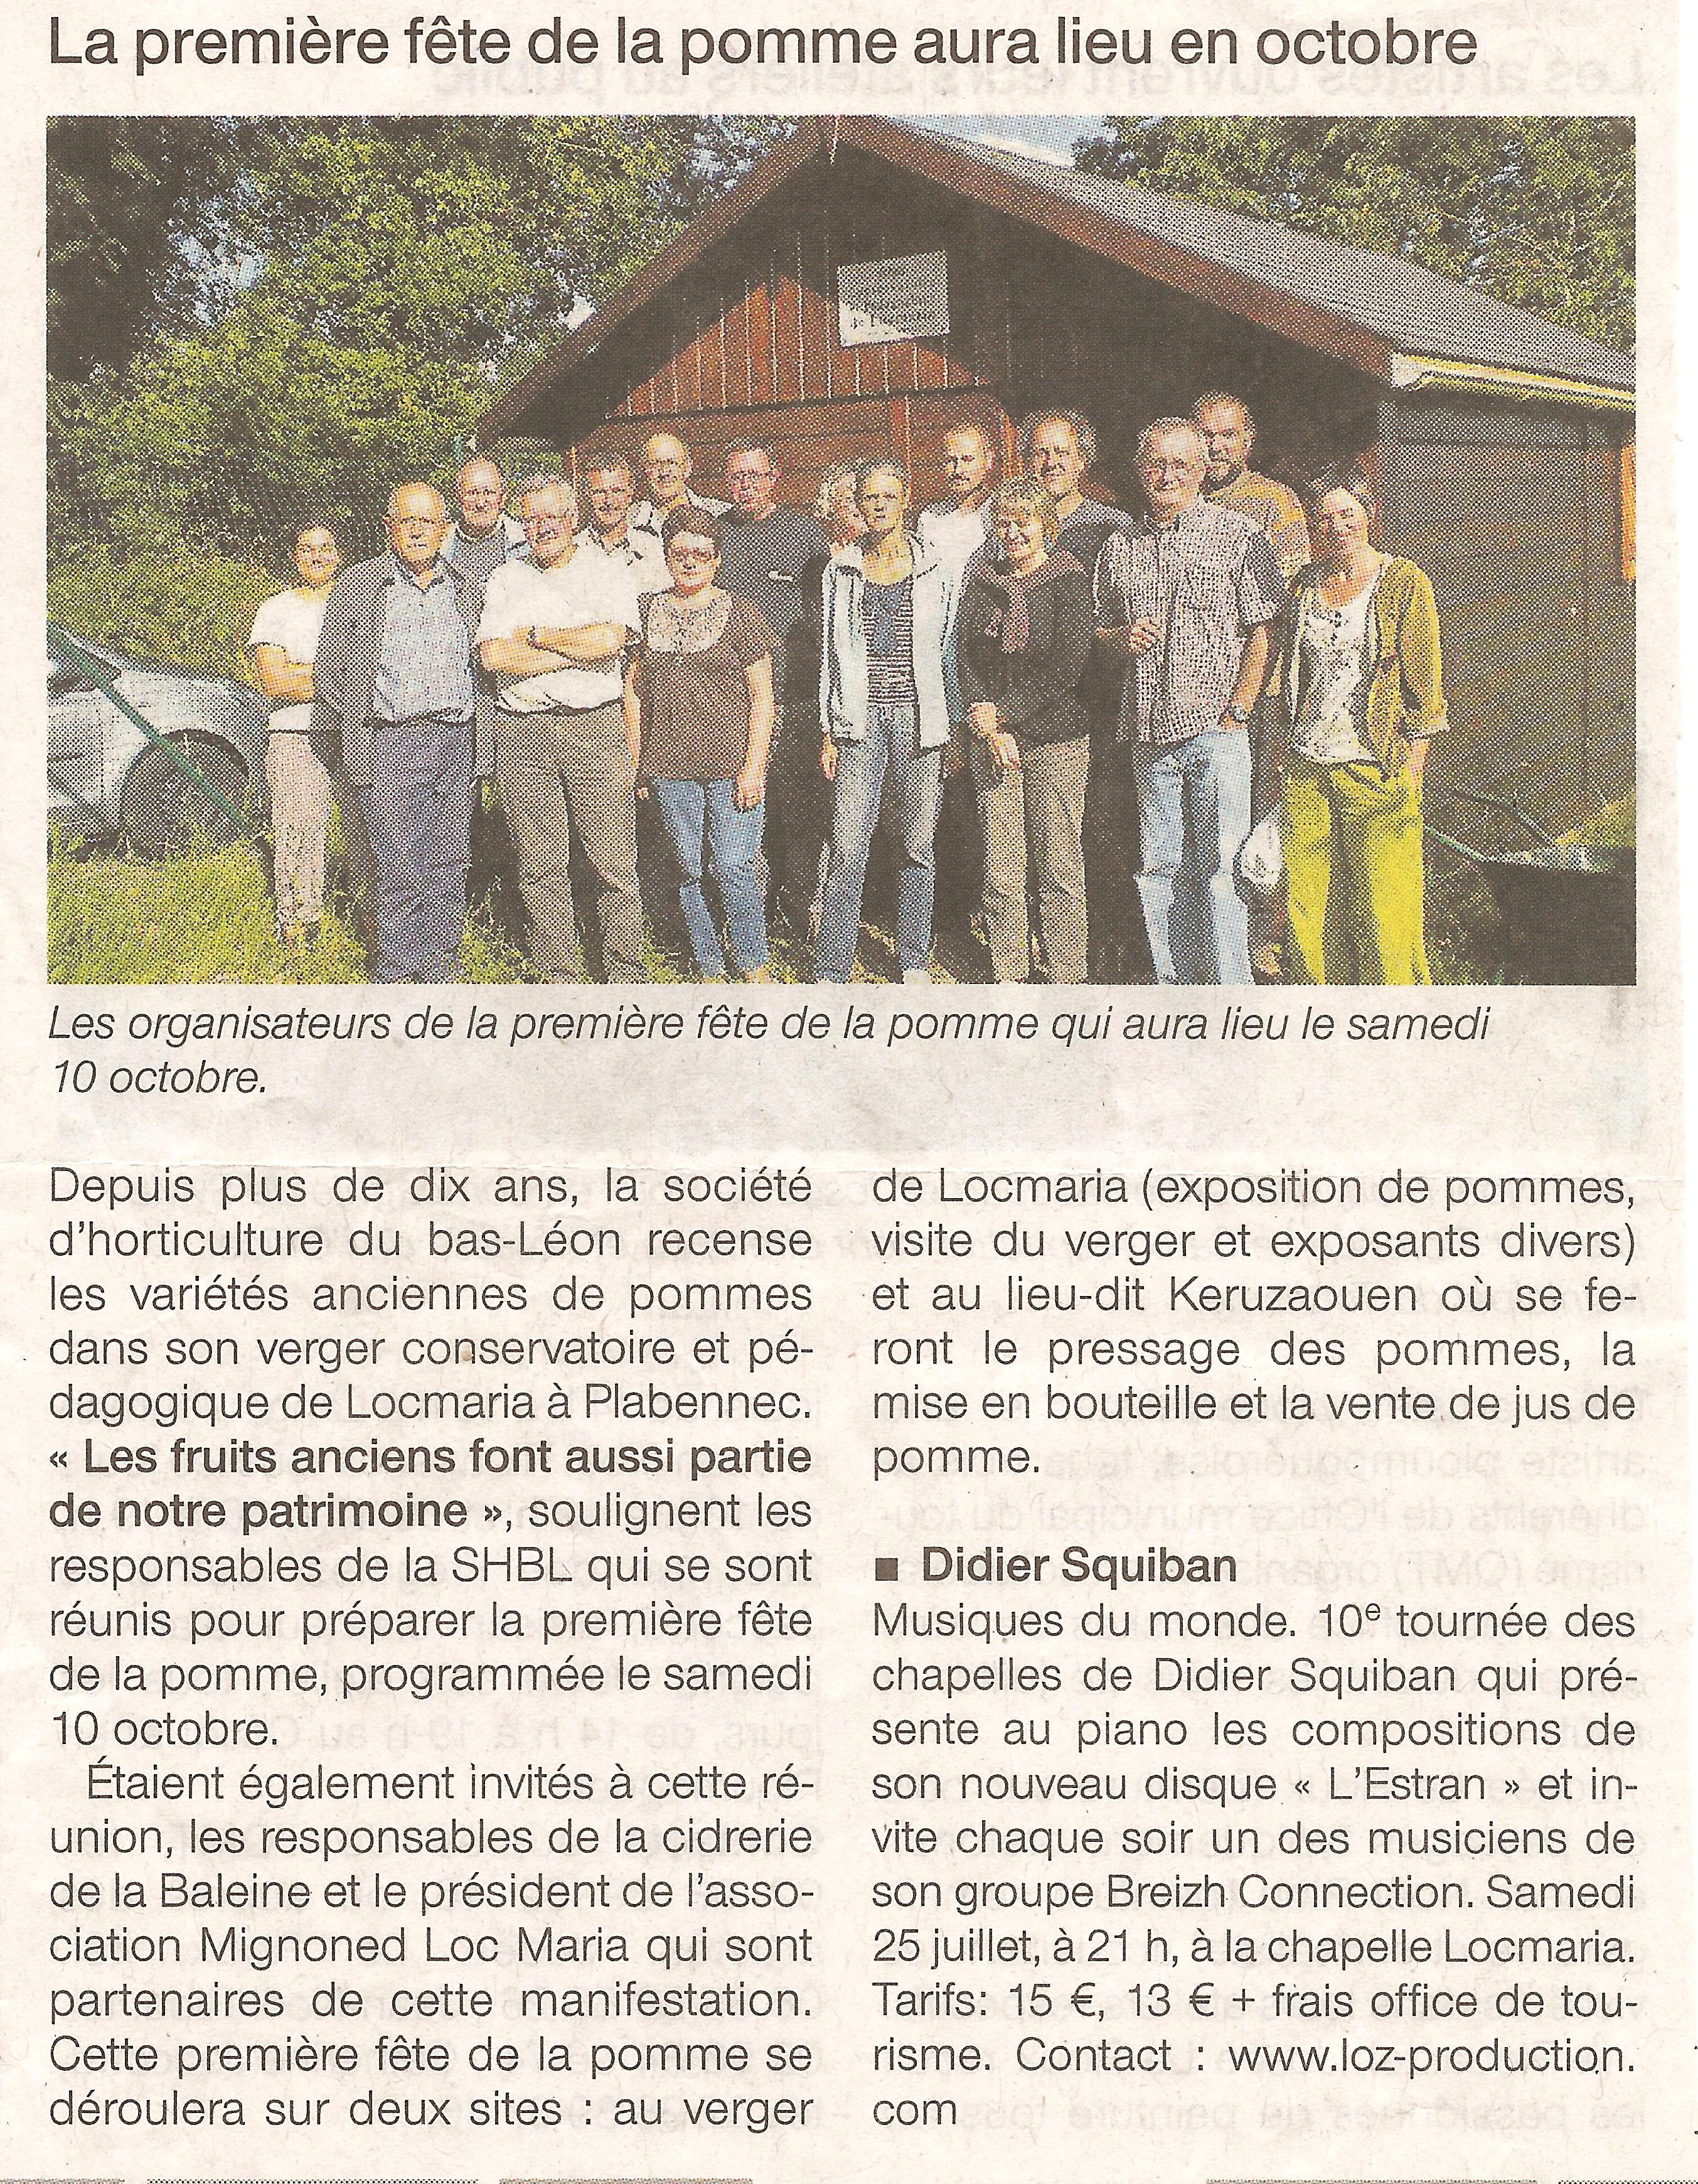 2009 07 23 Ouest France